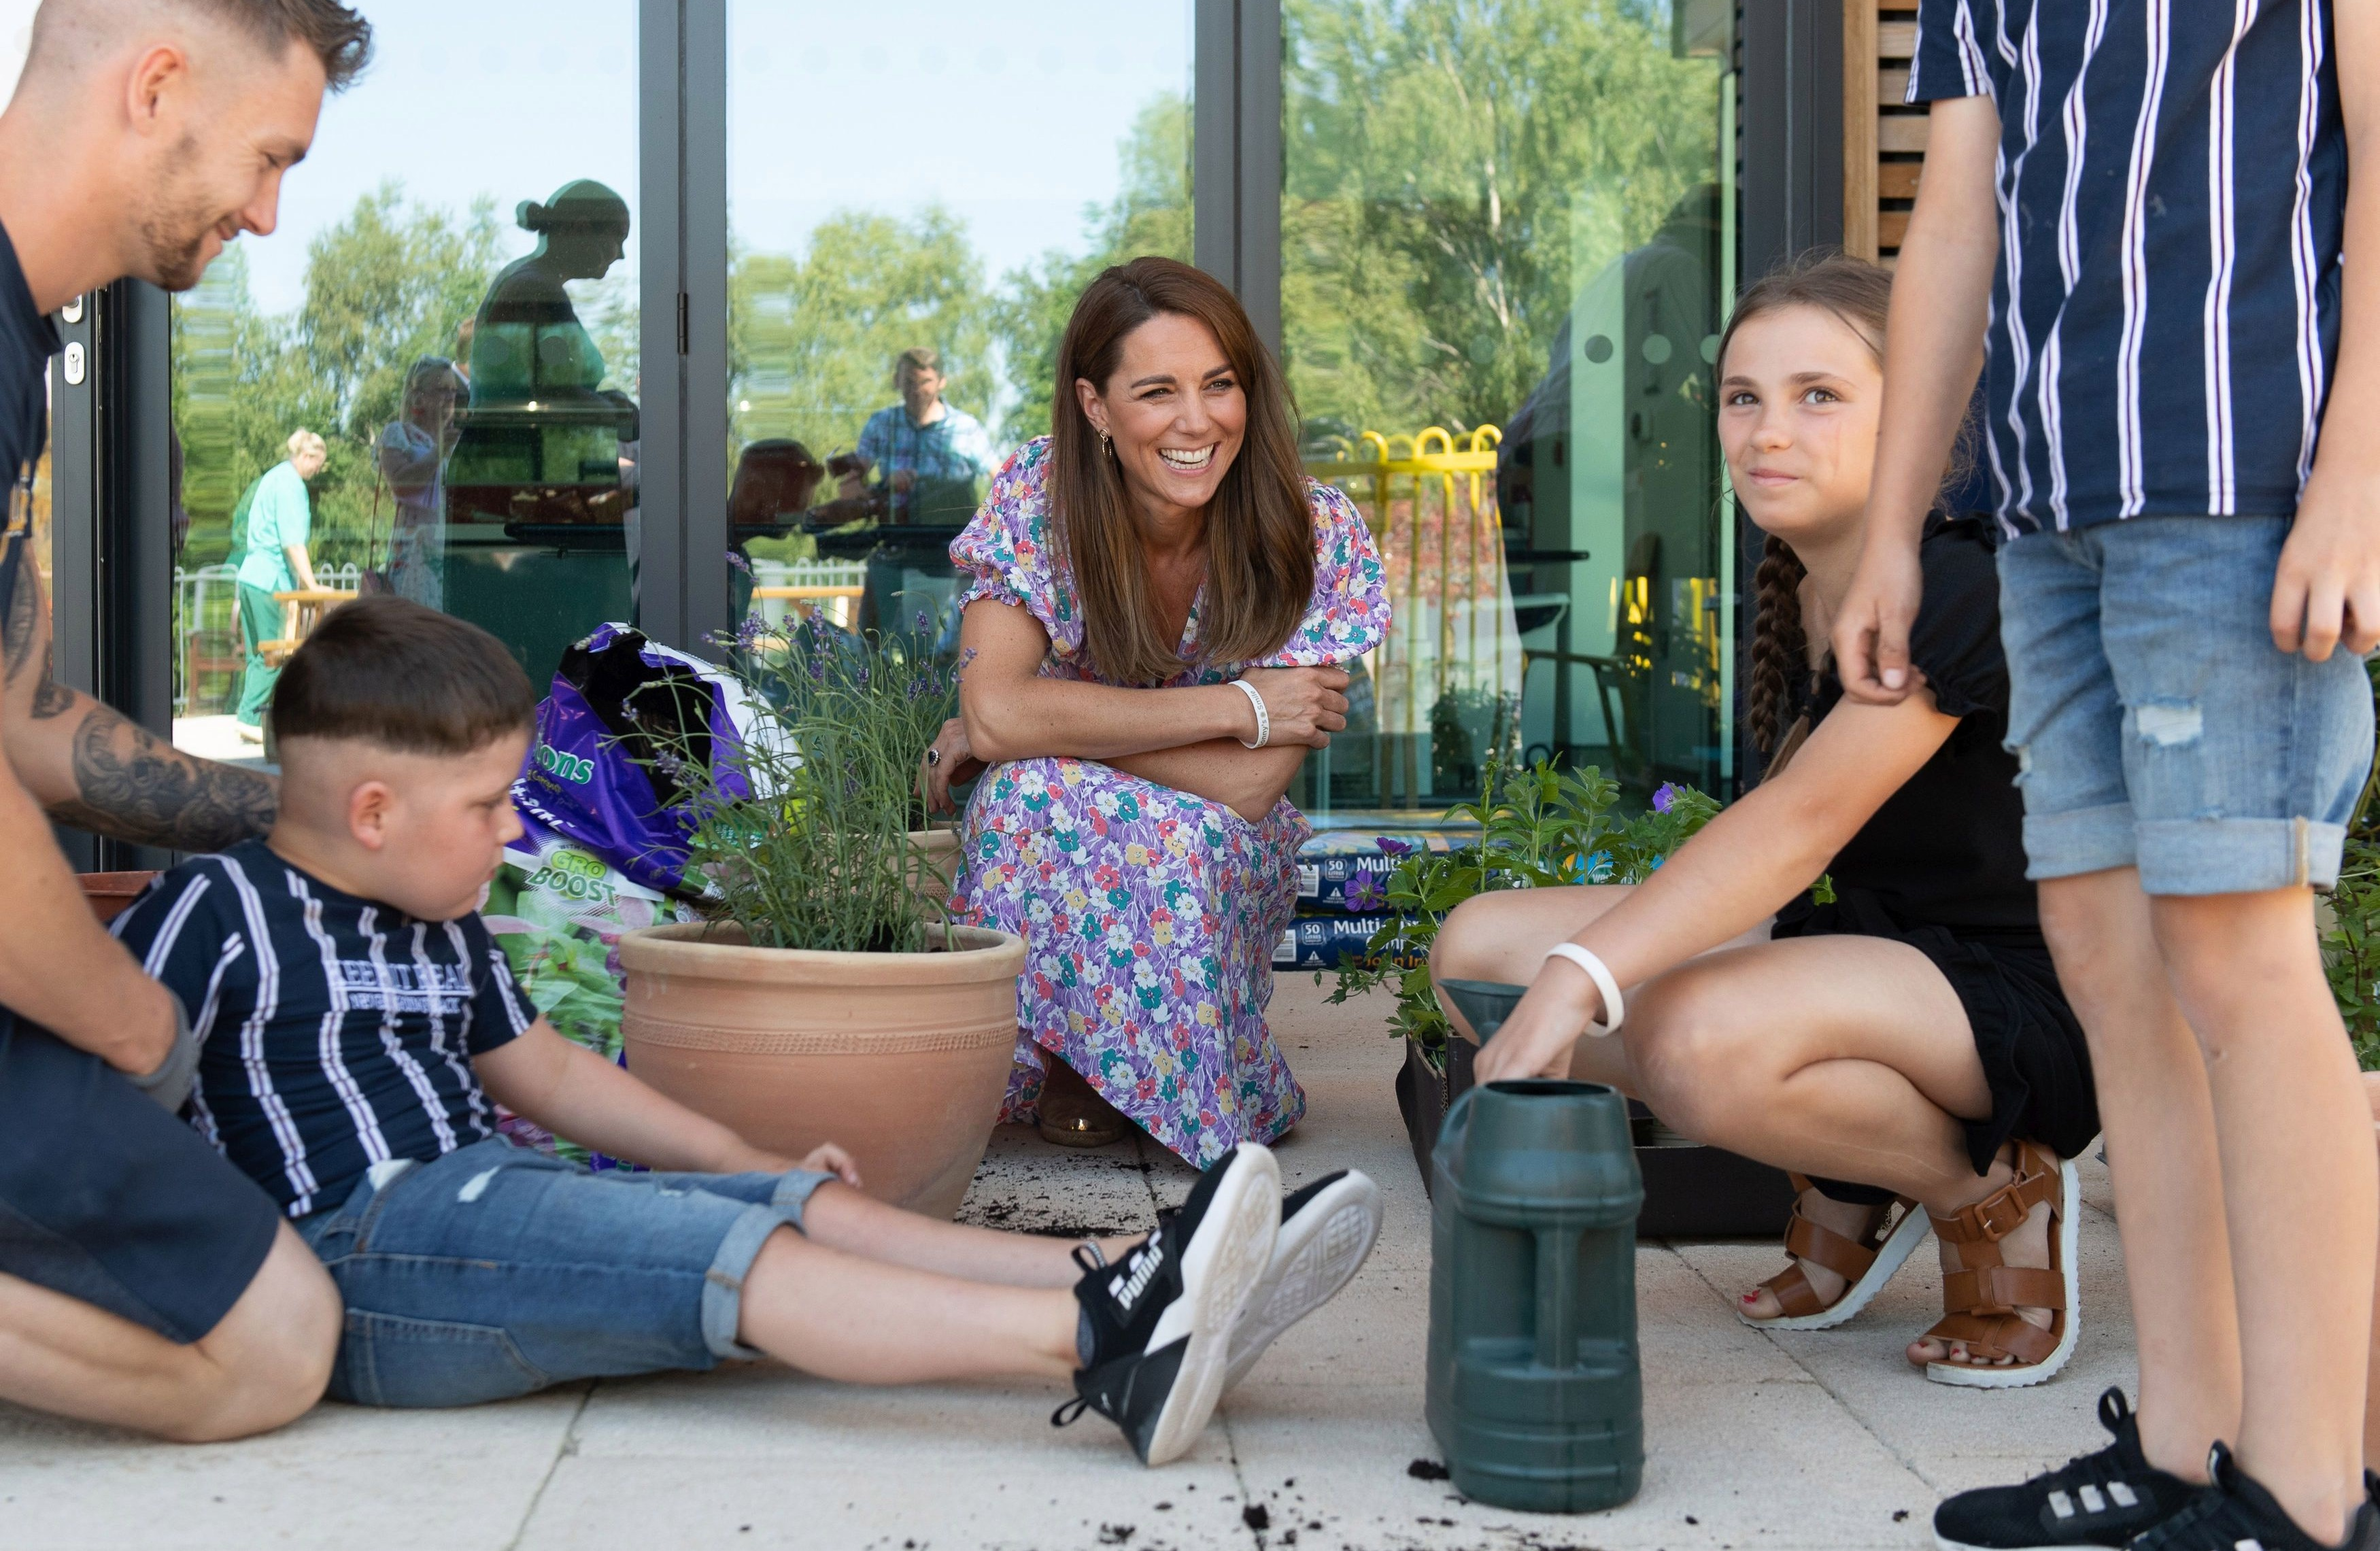 Kate Middleton mucks in to plant seeds with kids at hospice garden ...